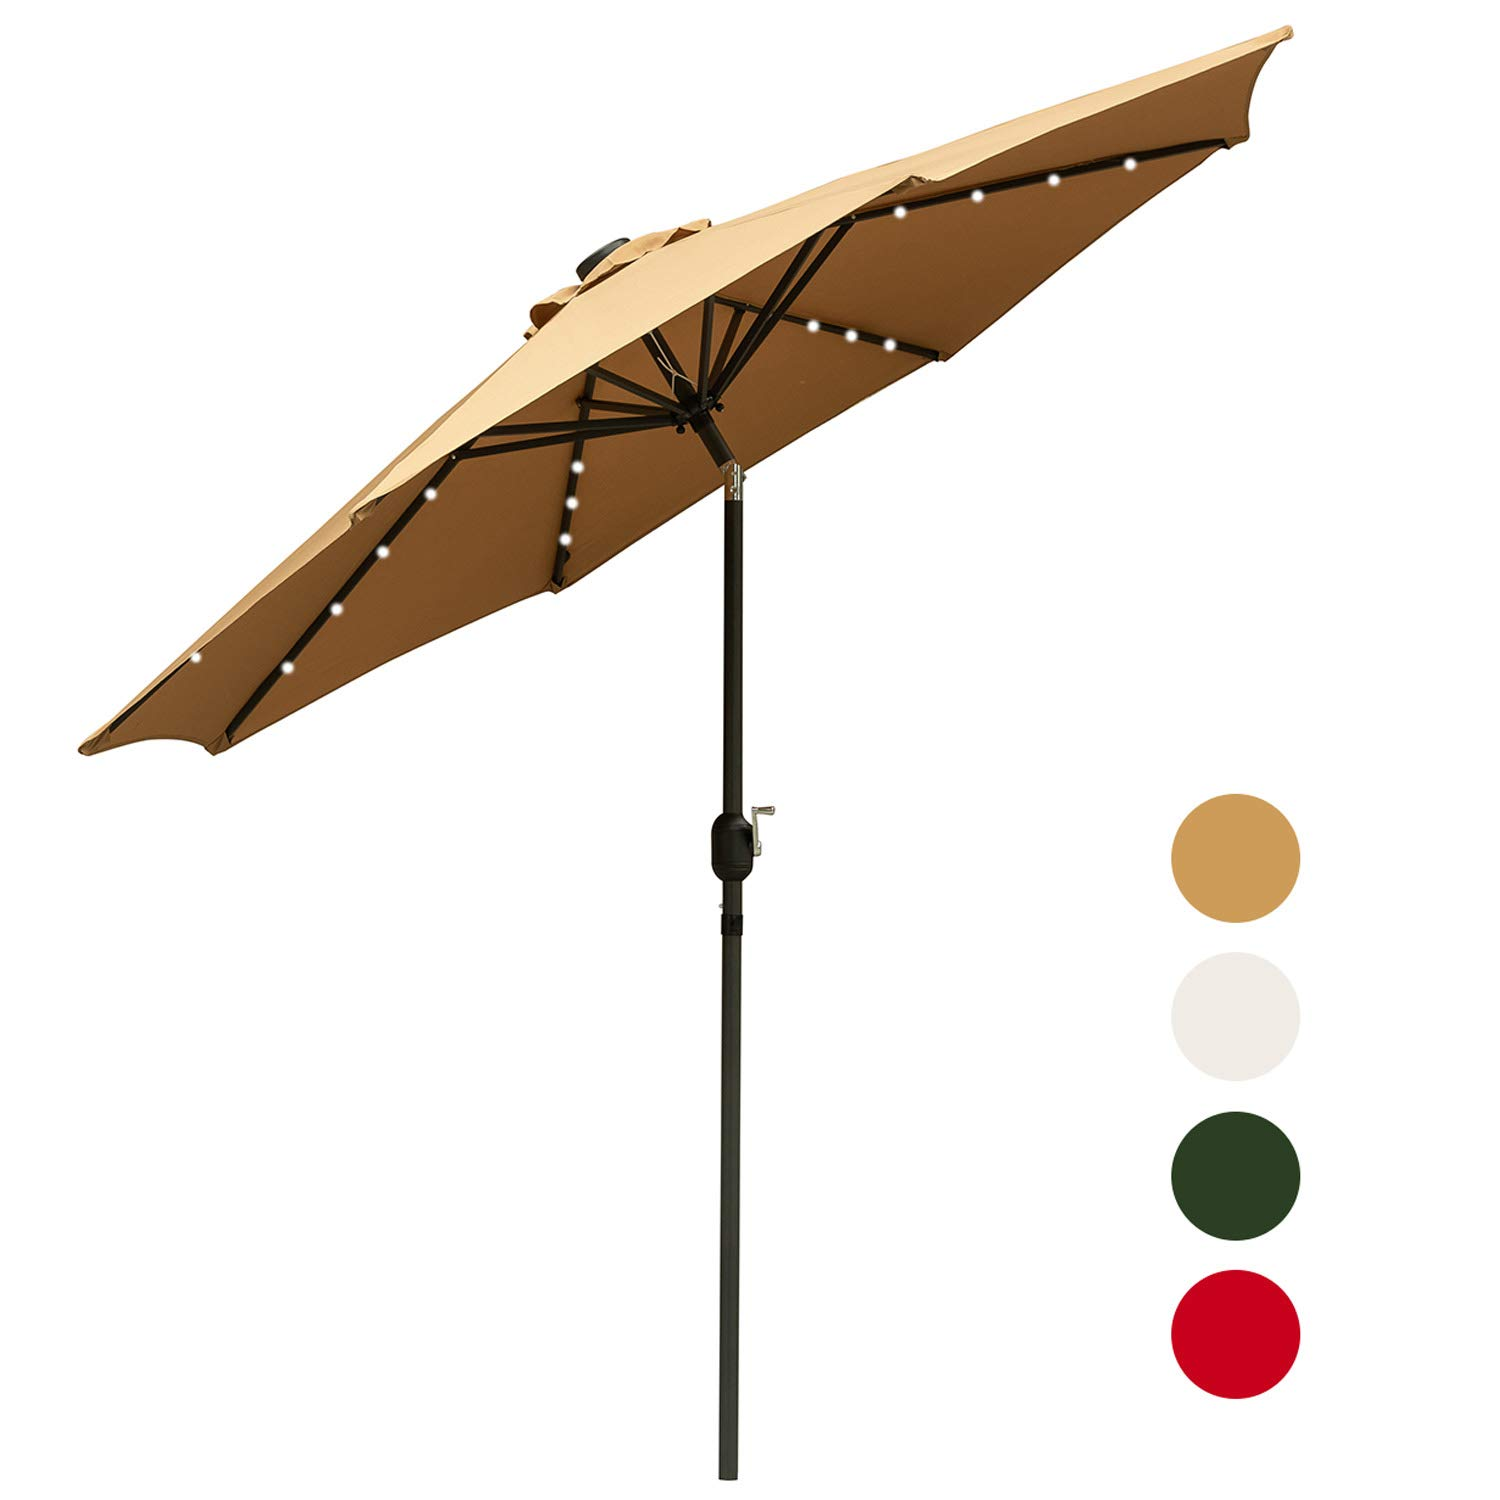 Outdoor Basic 9 Ft Patio Umbrella Solar Powered LED Lighted Fade-Resistant Table Umbrella with Wind Vent Brown by Outdoor Basic